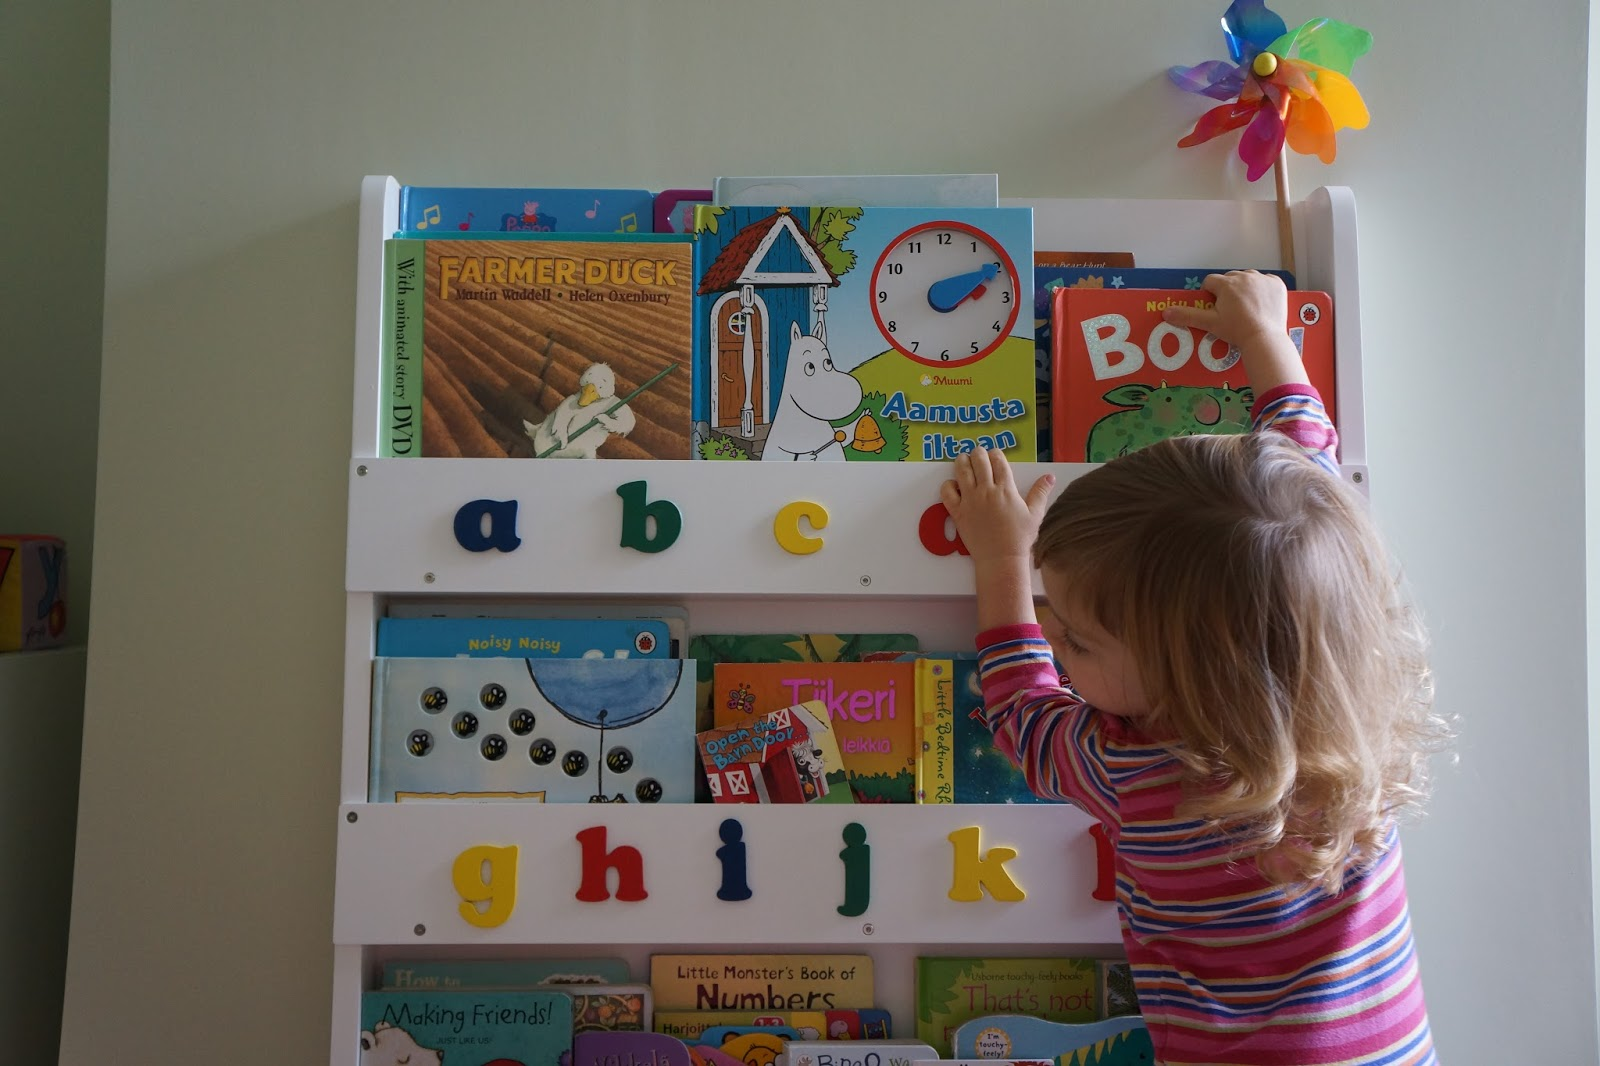 tidy books bookcase toddler reaching for books